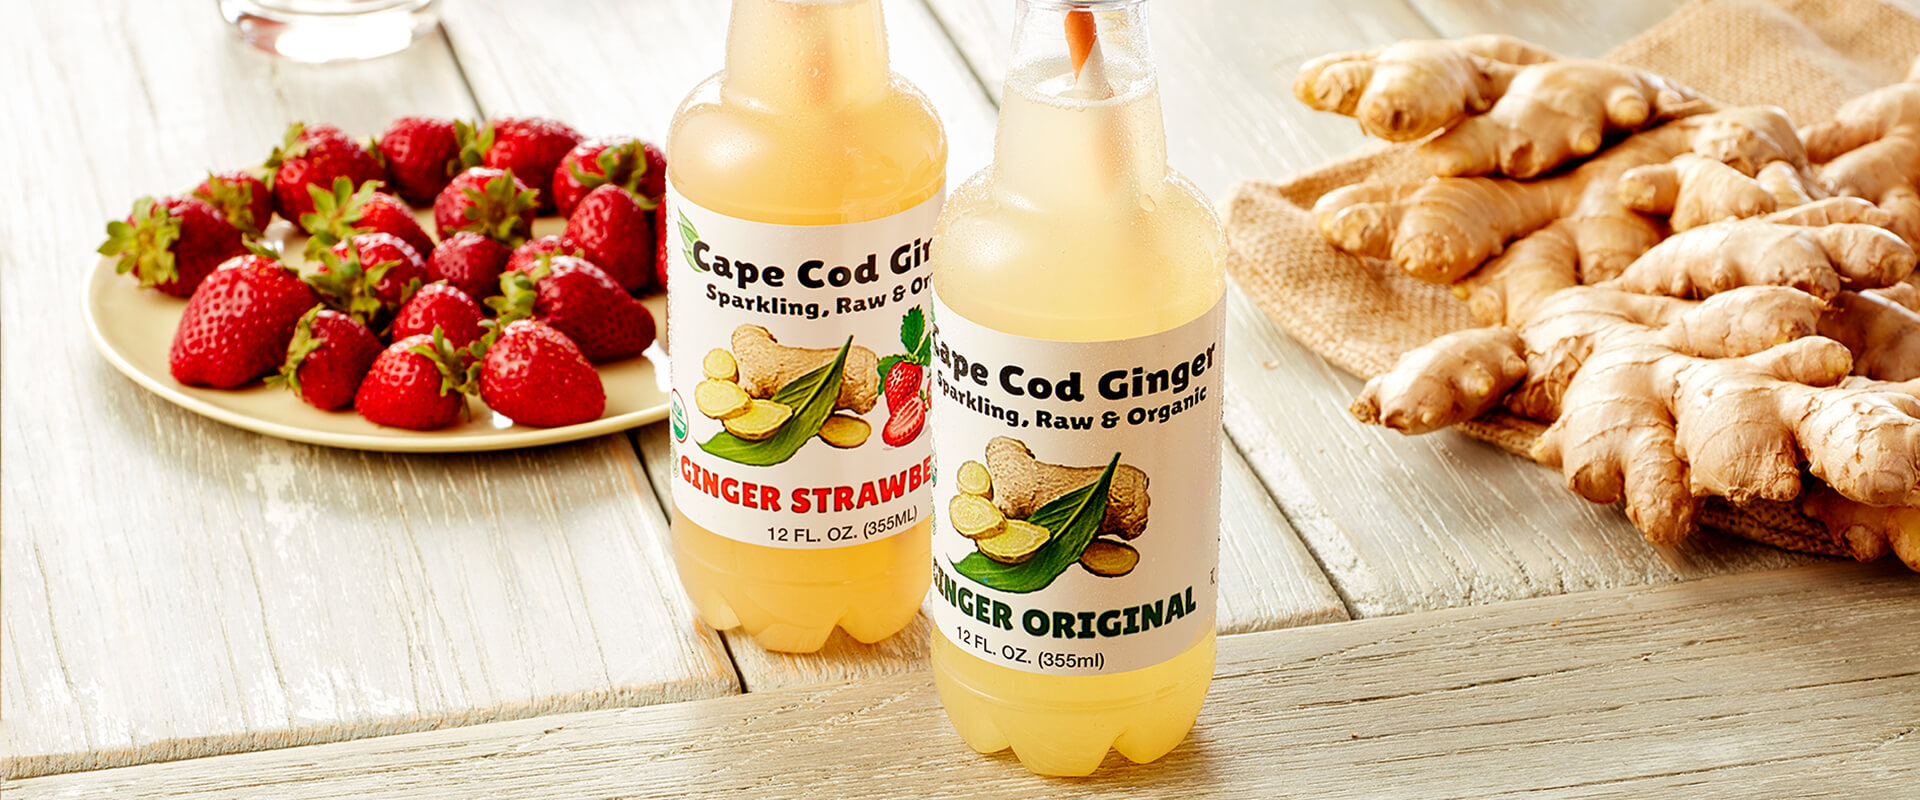 Cape Cod Ginger